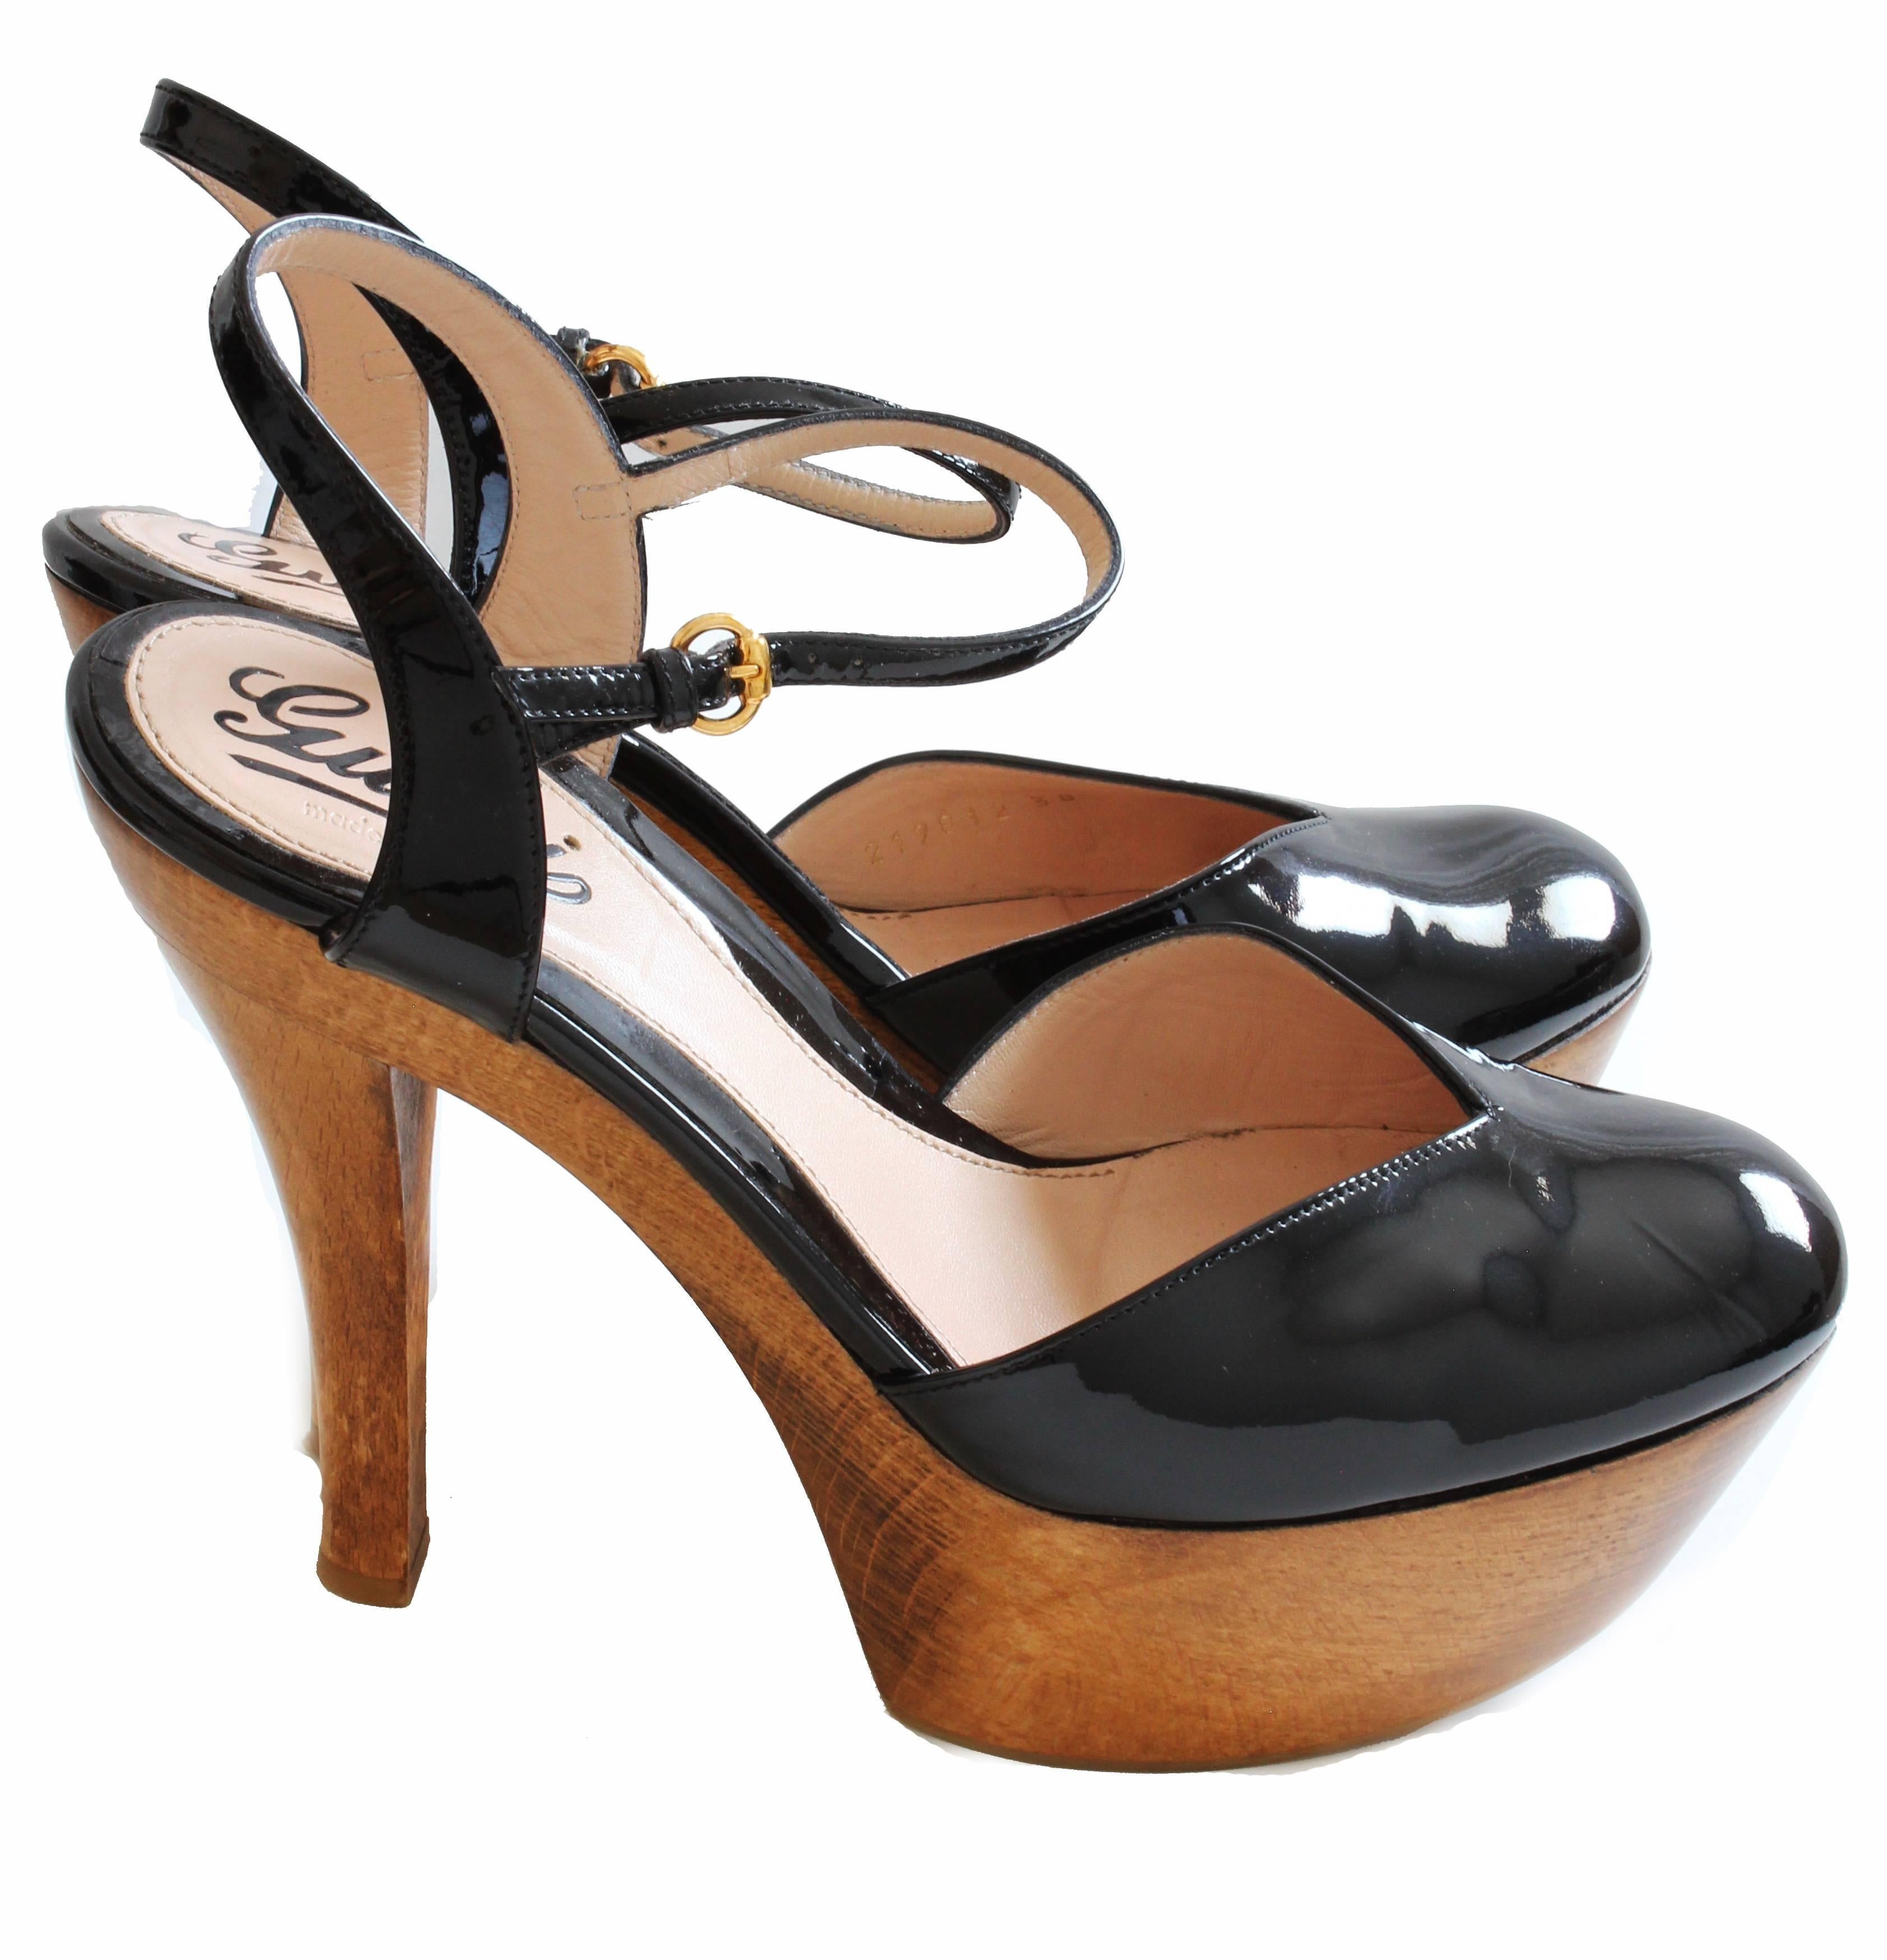 a474ebc8f01 Gucci Black Patent Leather Ankle Strap Platform Shoes Wood Heel with Box sz  38 For Sale at 1stdibs